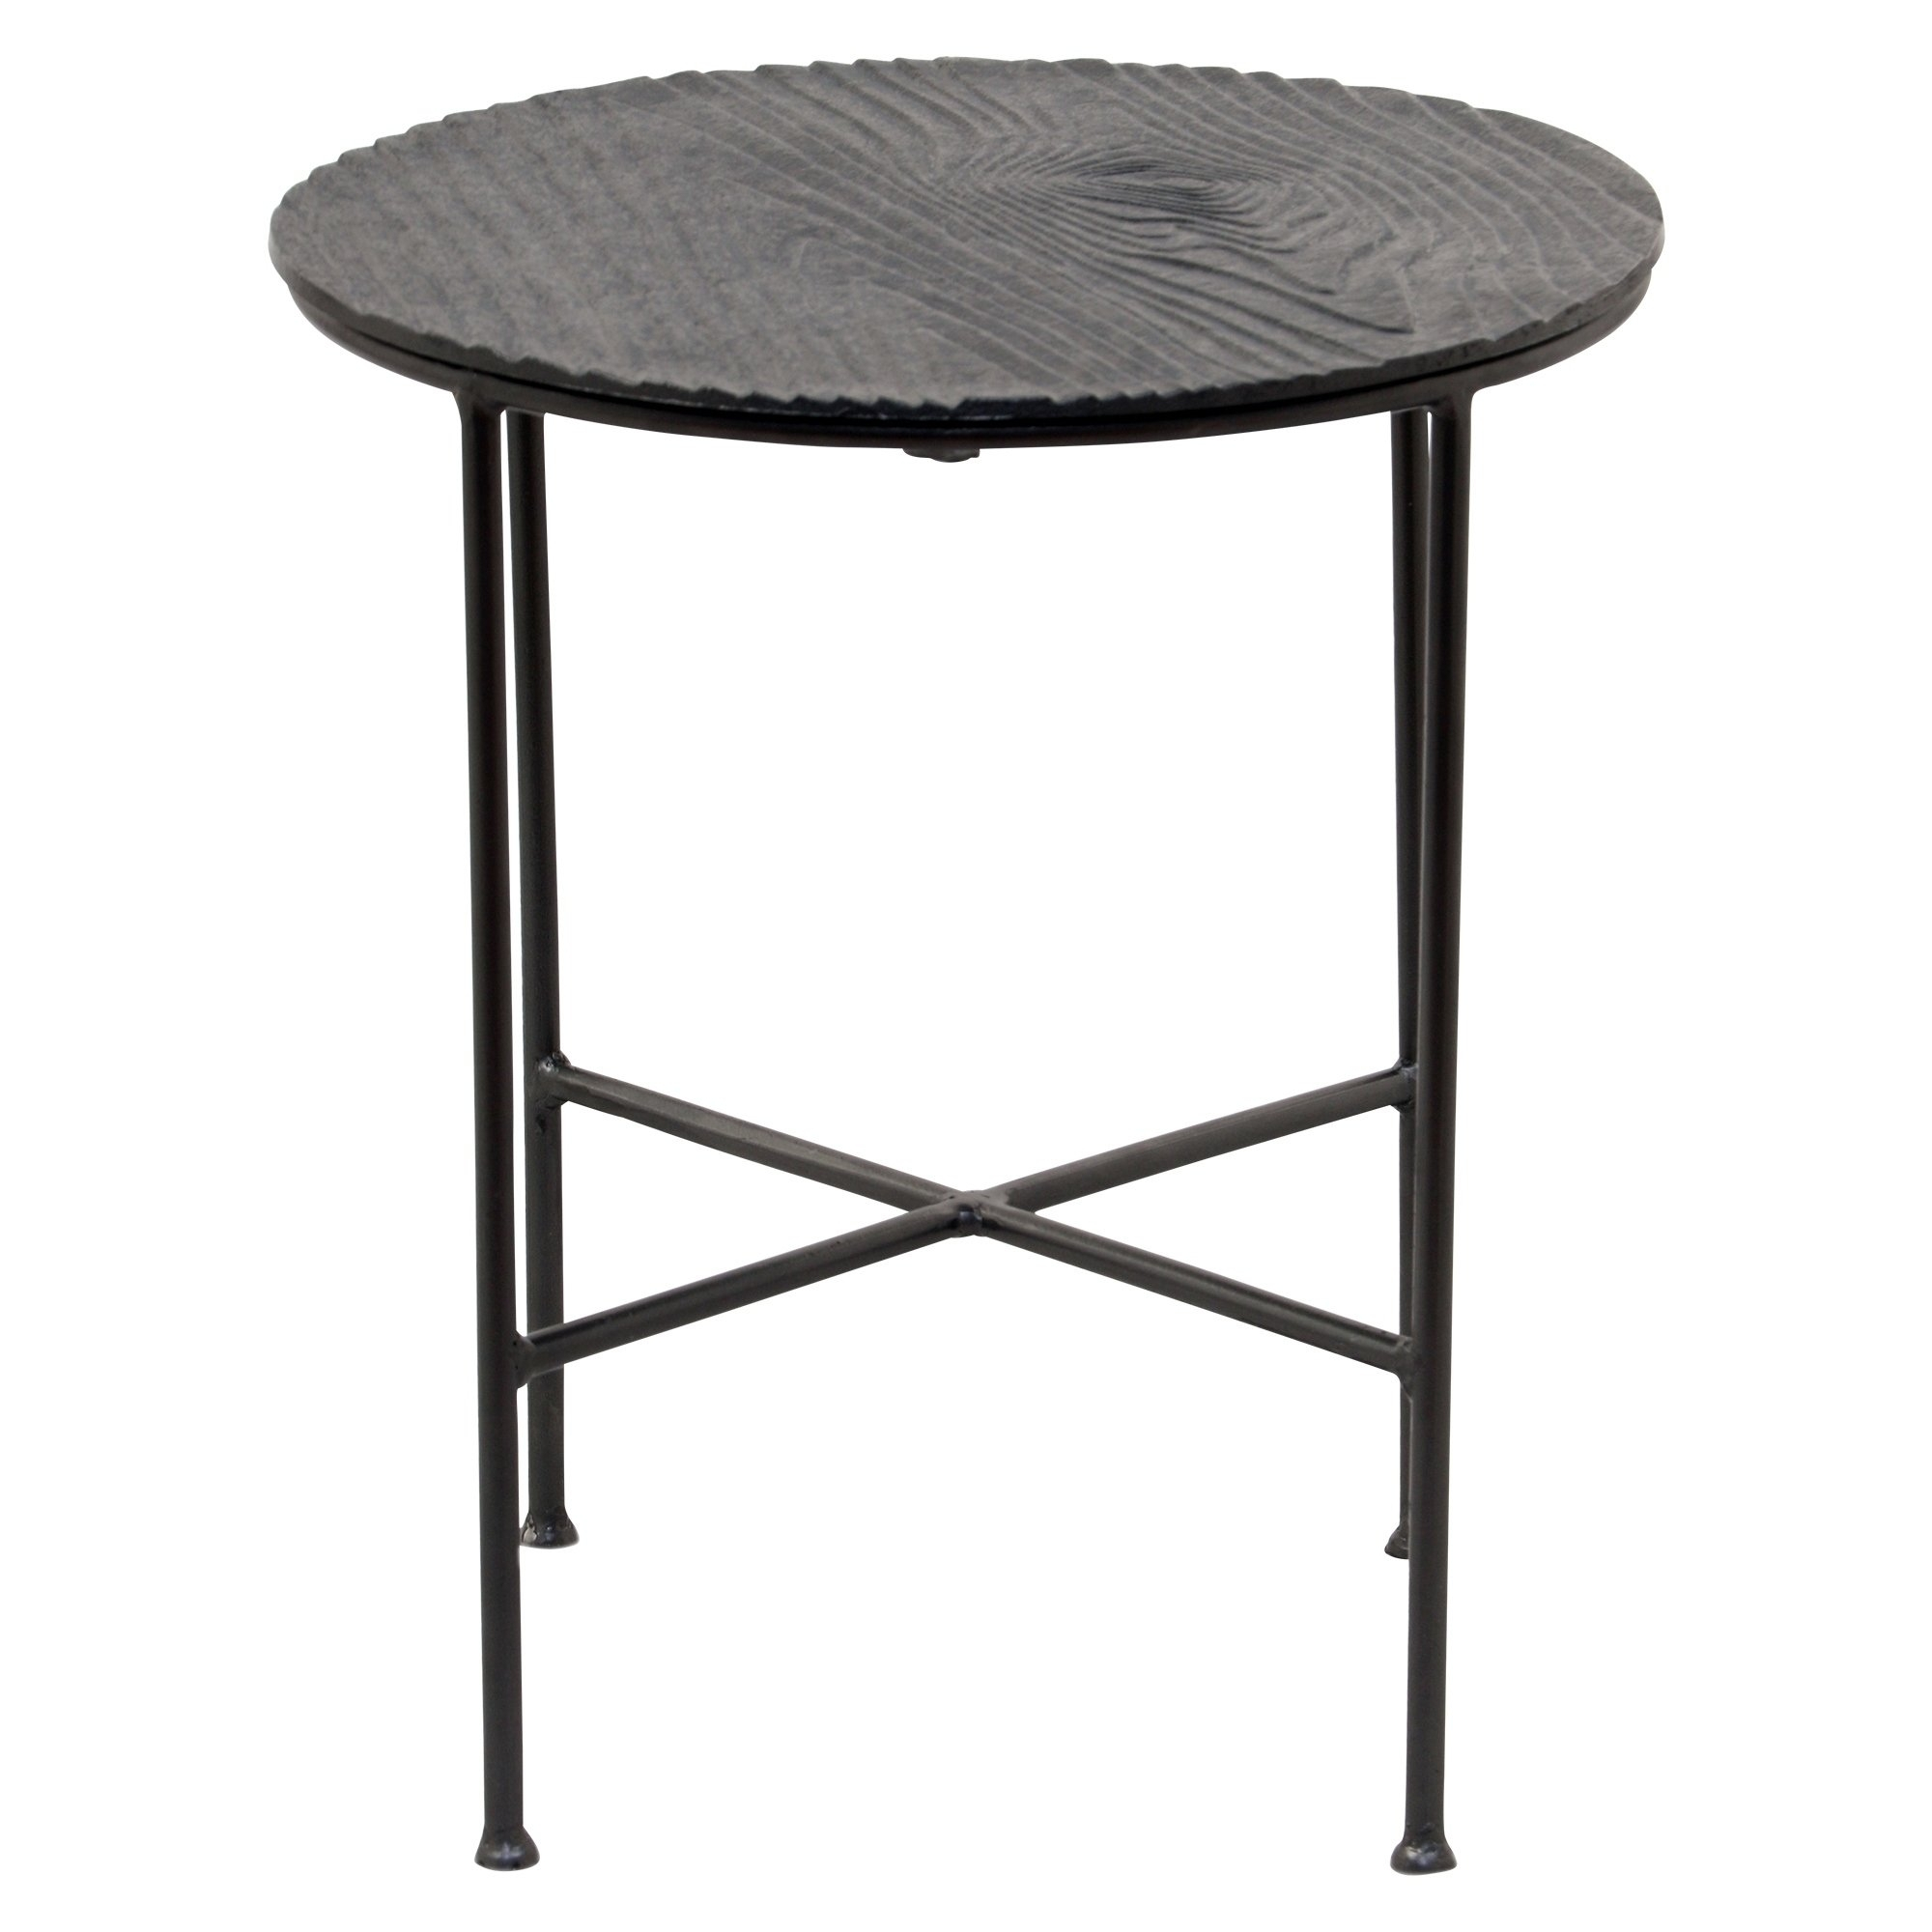 Shop Renwil Bale Grey Aluminum Round Accent Table – Free Shipping Within Most Current Bale Rustic Grey Dining Tables (Image 18 of 20)